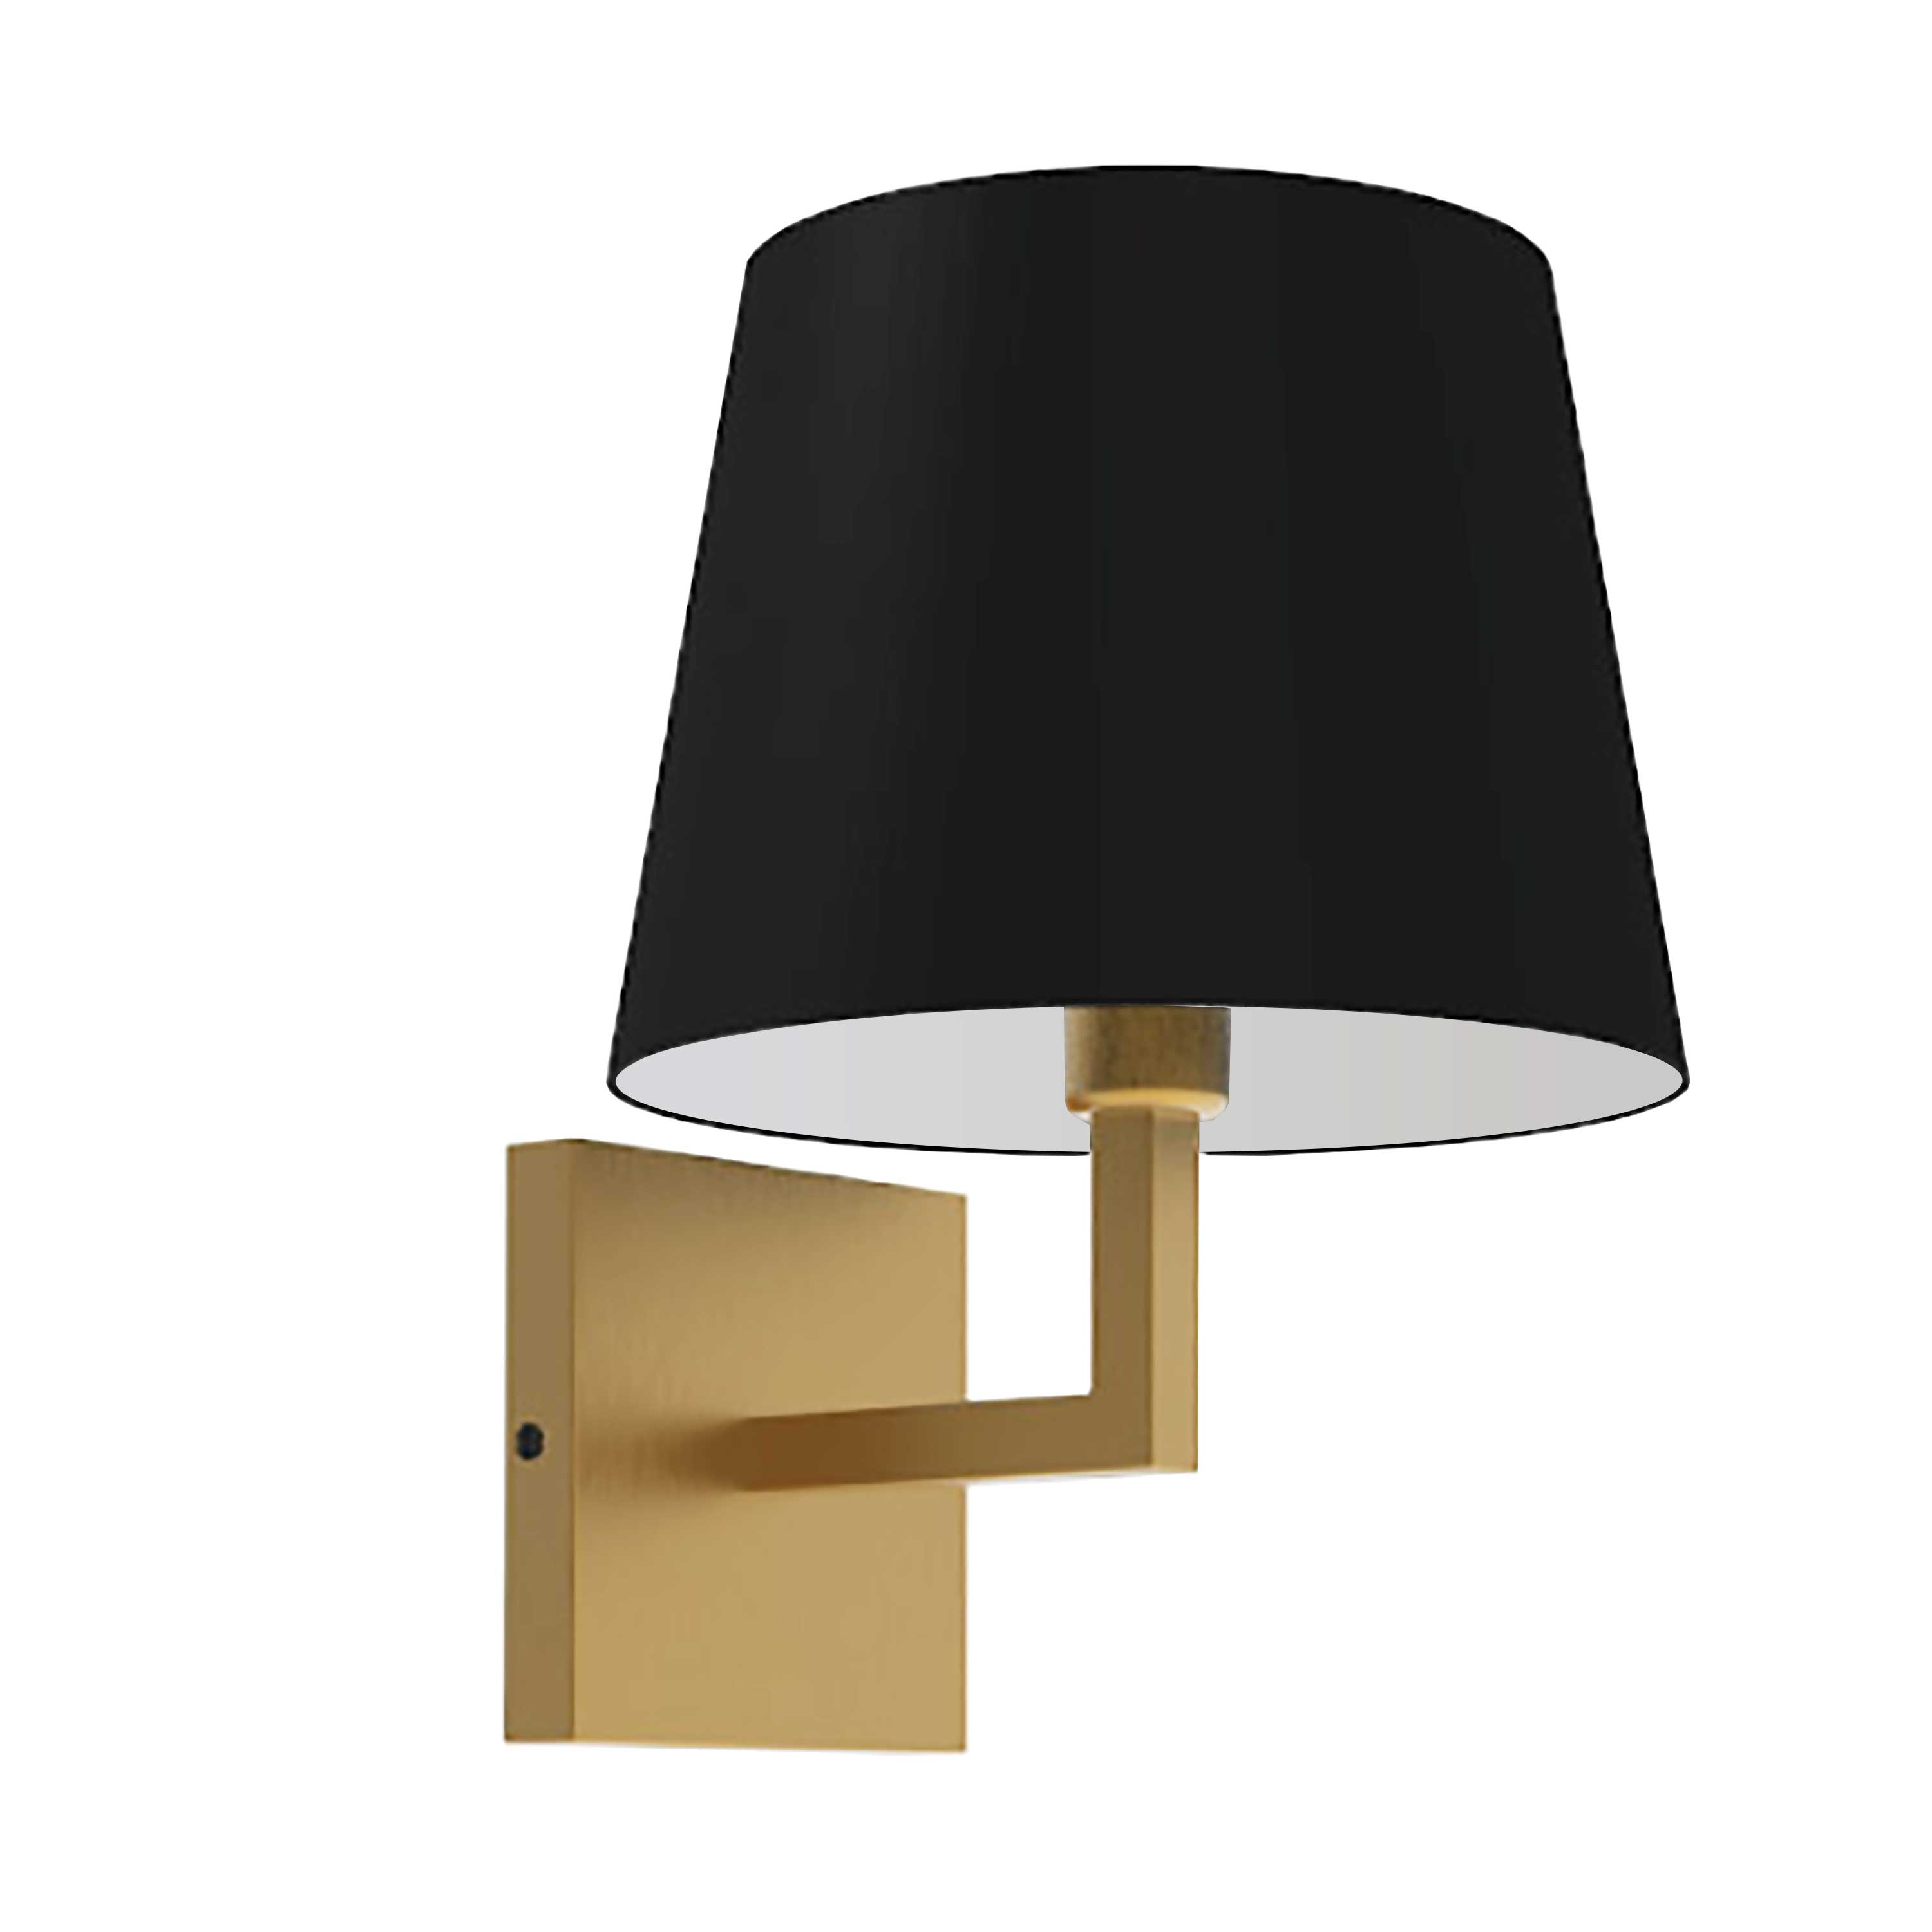 1LT Incandescent Wall Sconce,  AGB w/ Black Shade